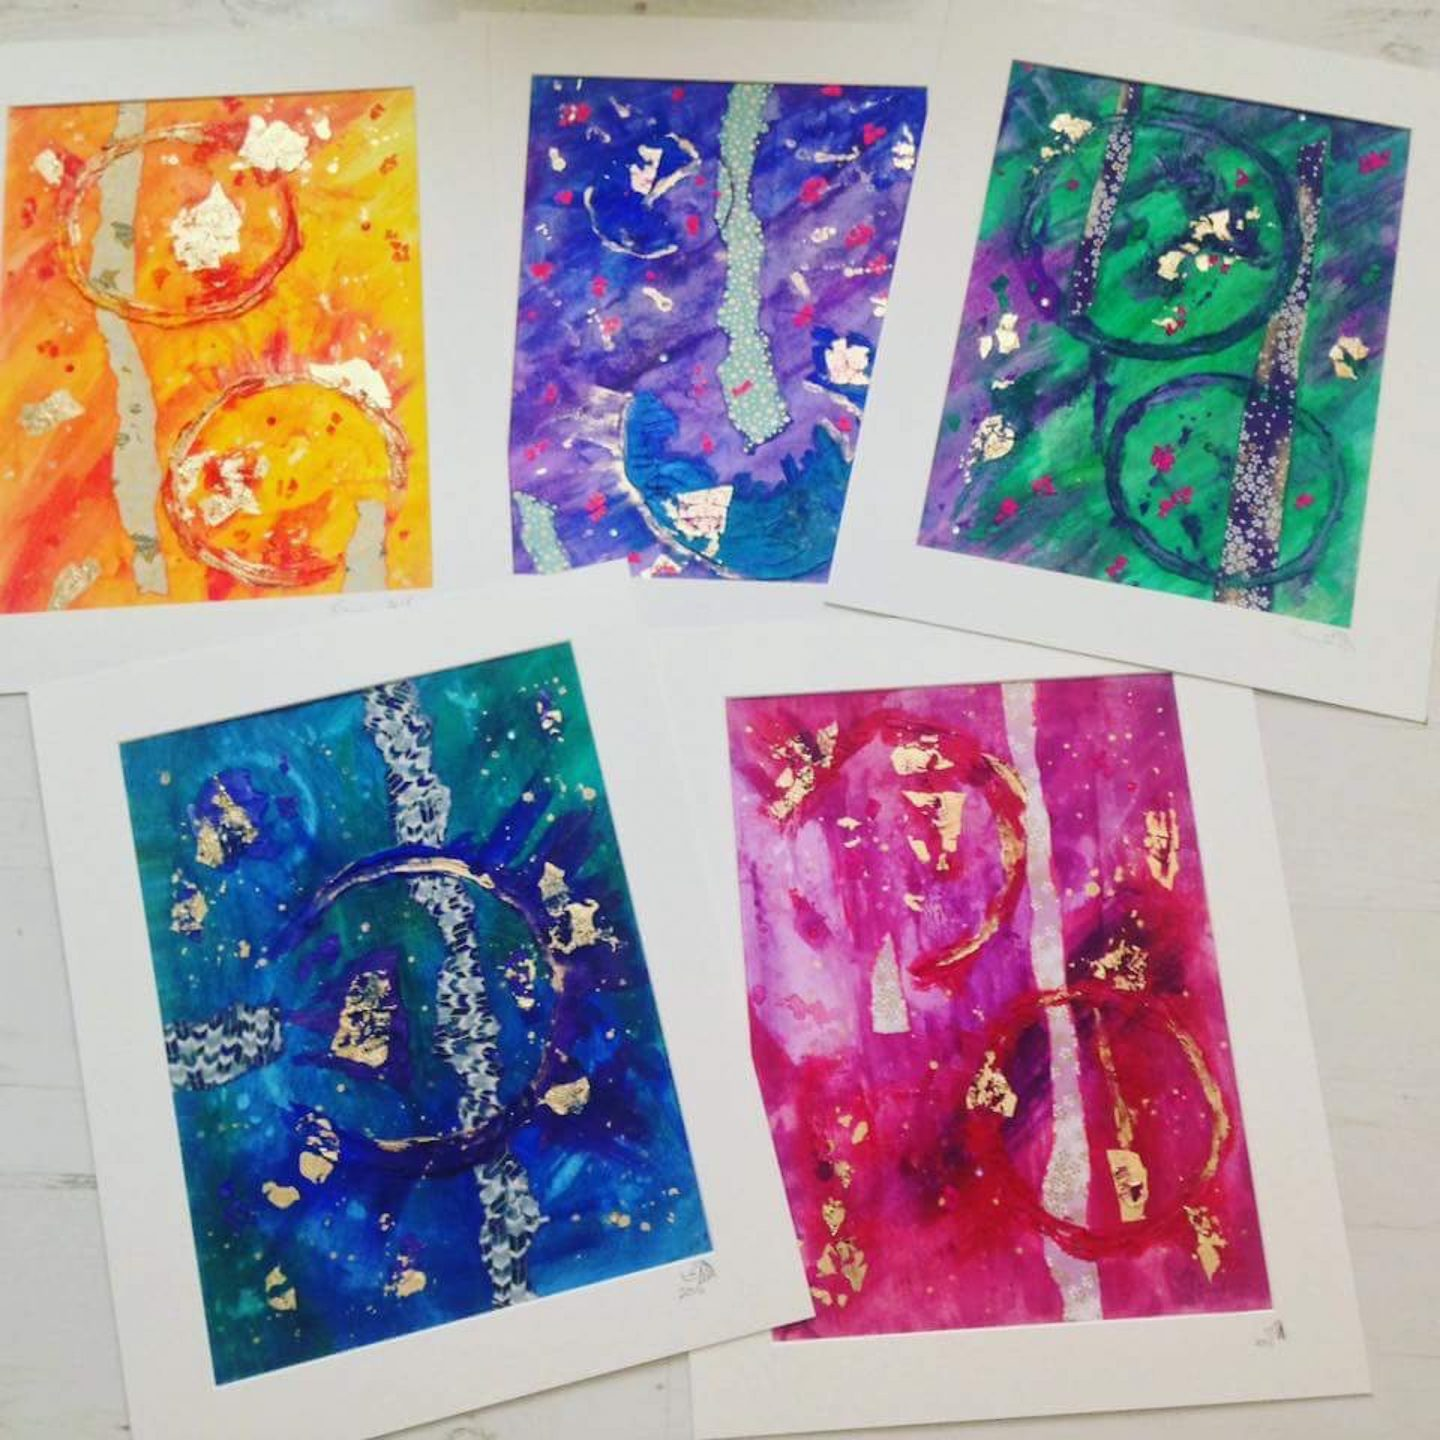 Colourful and textured abstract art pieces on paper.